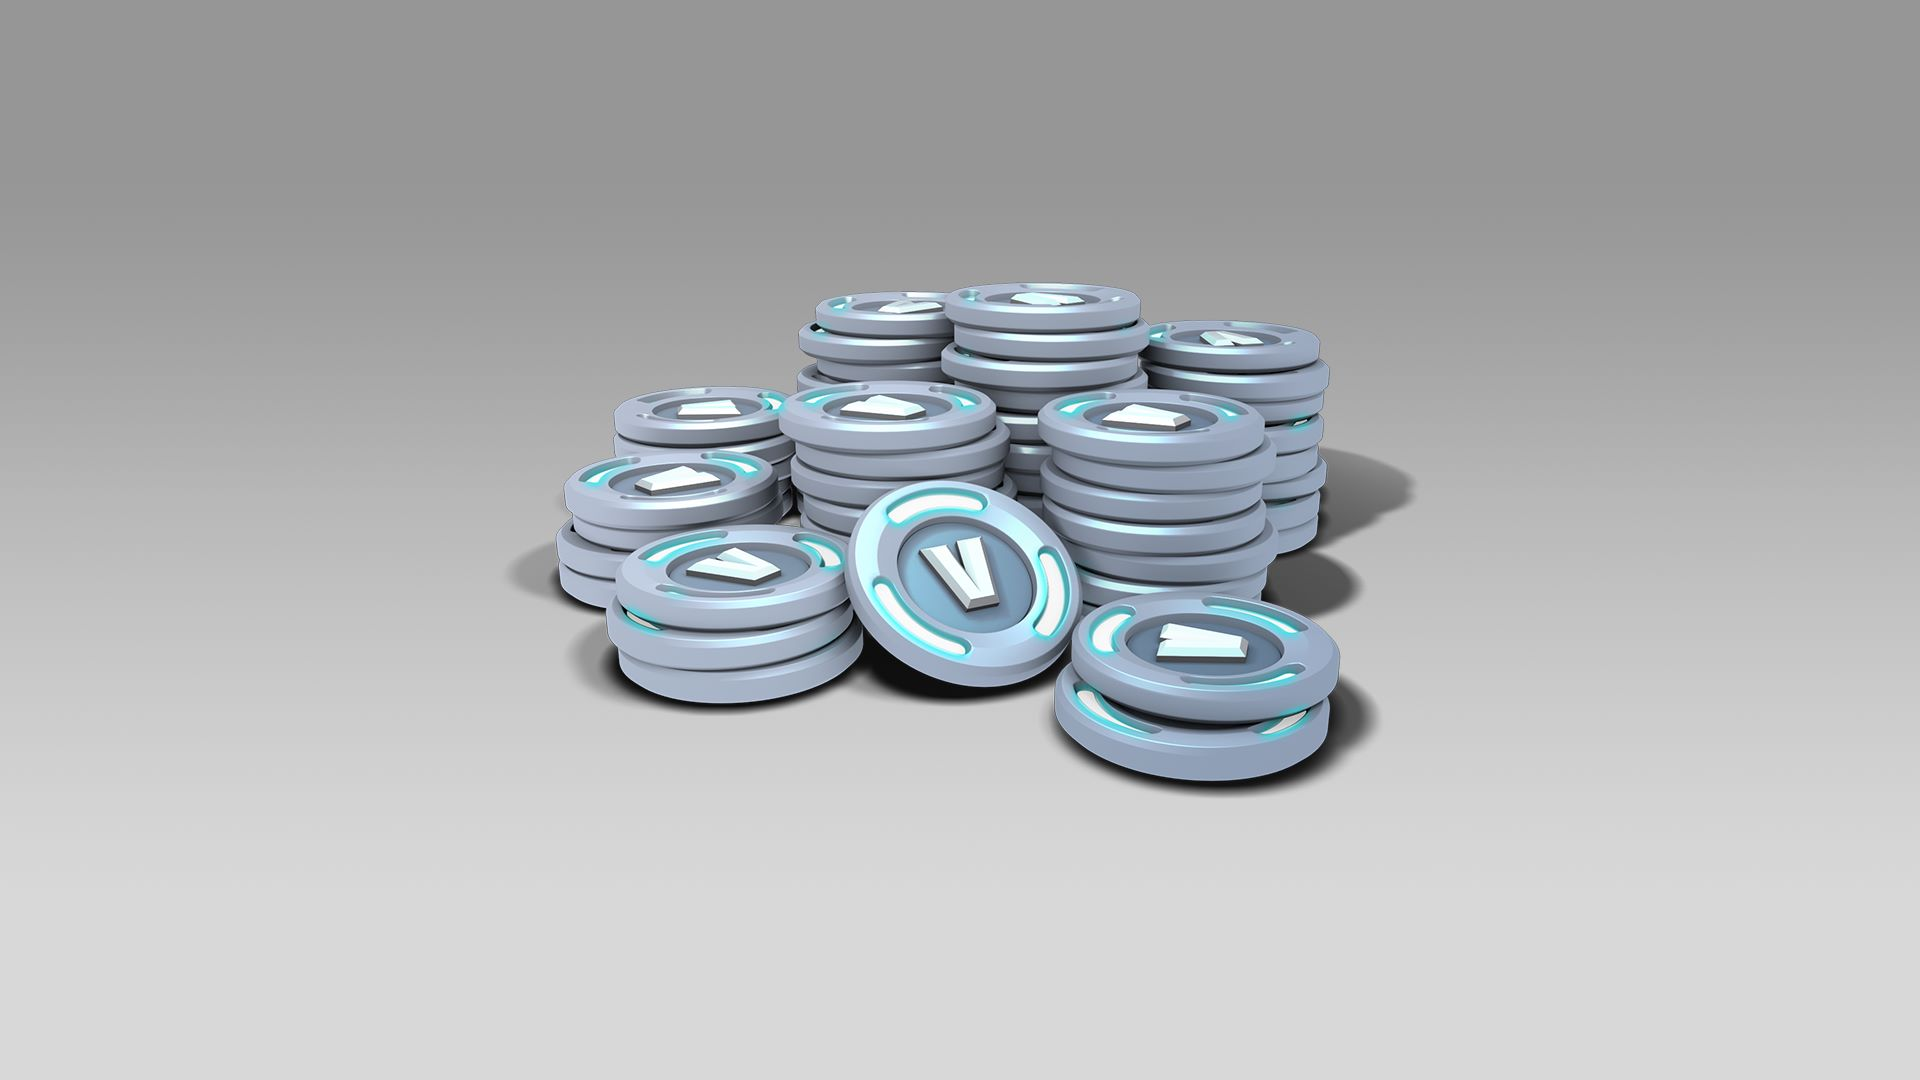 Buy Fortnite - 10,000 (+3,500 Bonus) V-Bucks - Microsoft Store